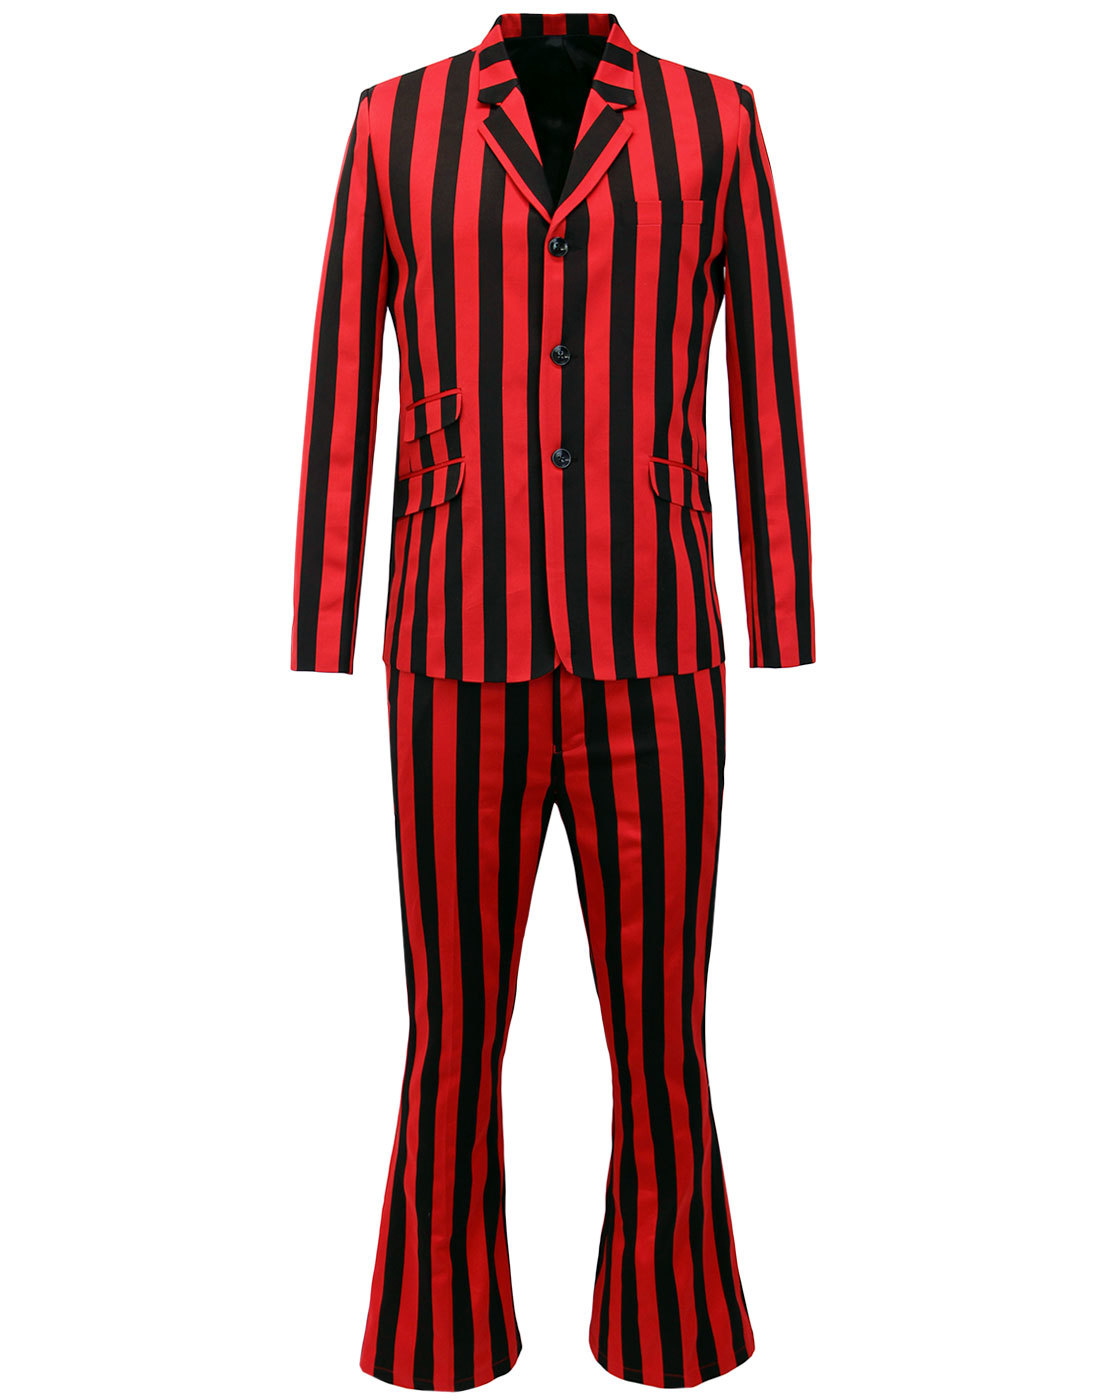 Inferno Suit MADCAP ENGLAND Flared Bellbottom Suit